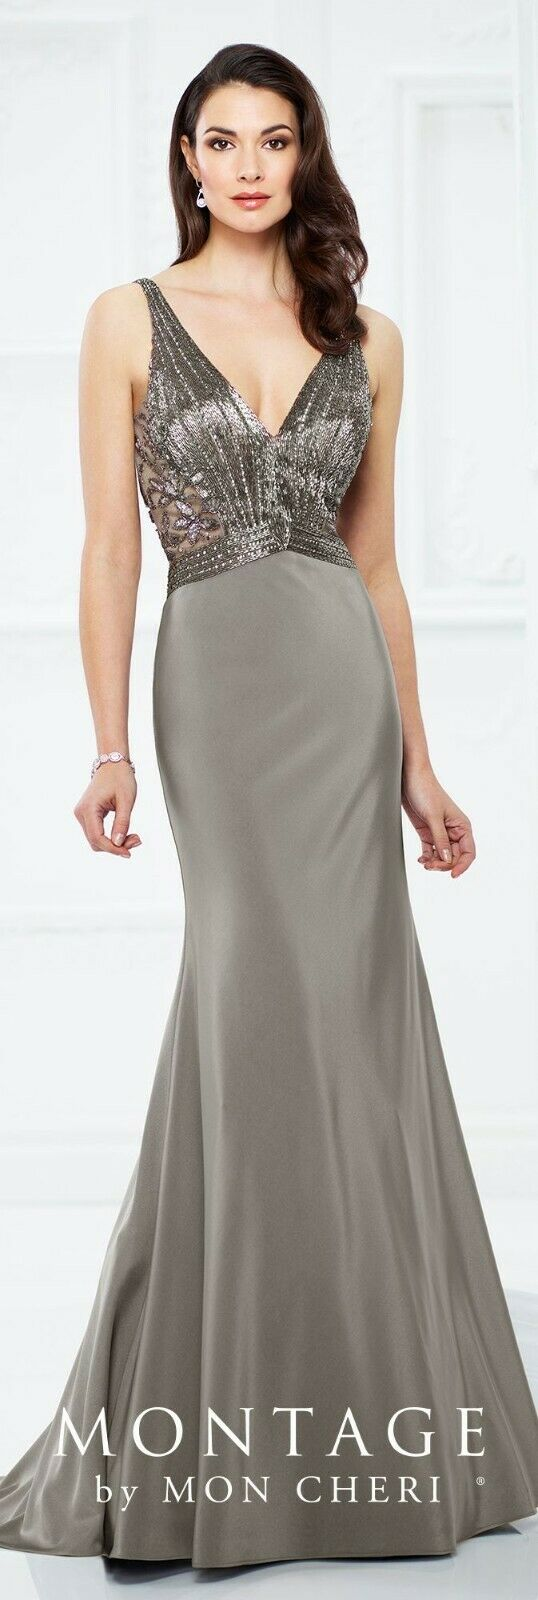 Montage 217933 Mother of the Bride Dress   Sample, Size: 10, Gray